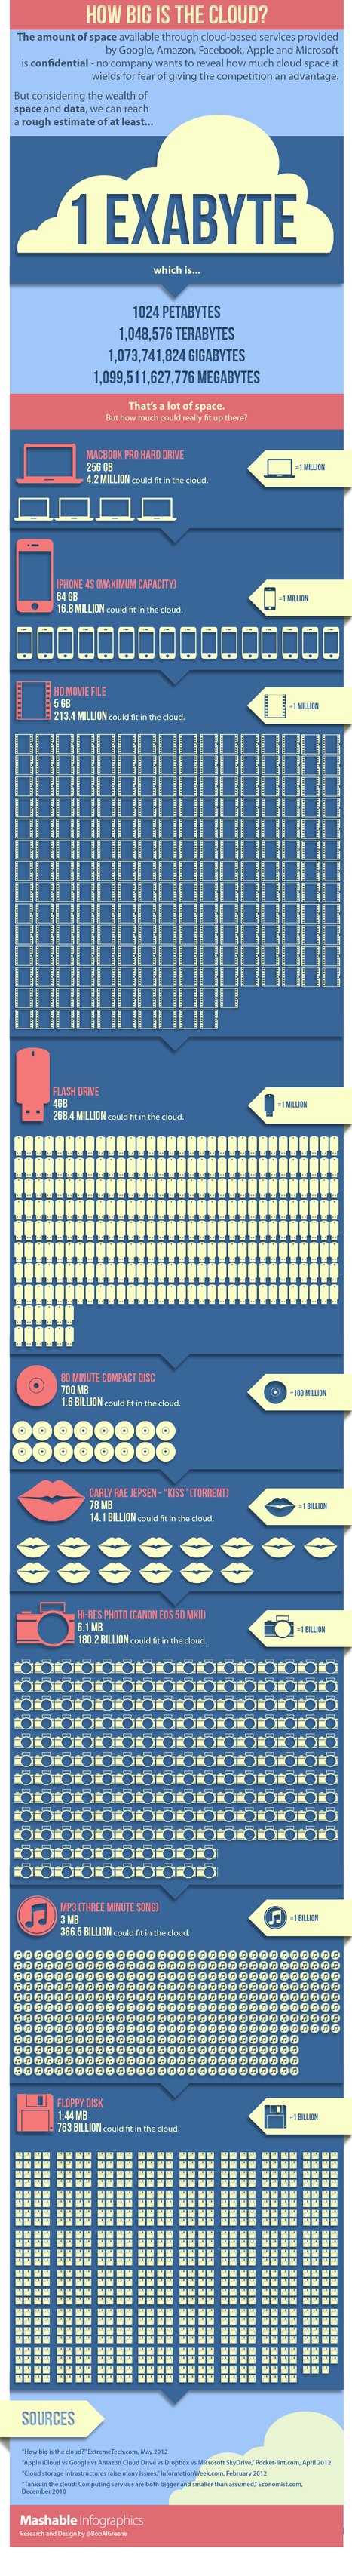 How Big Is the Cloud? [INFOGRAPHIC] | omnia mea mecum fero | Scoop.it